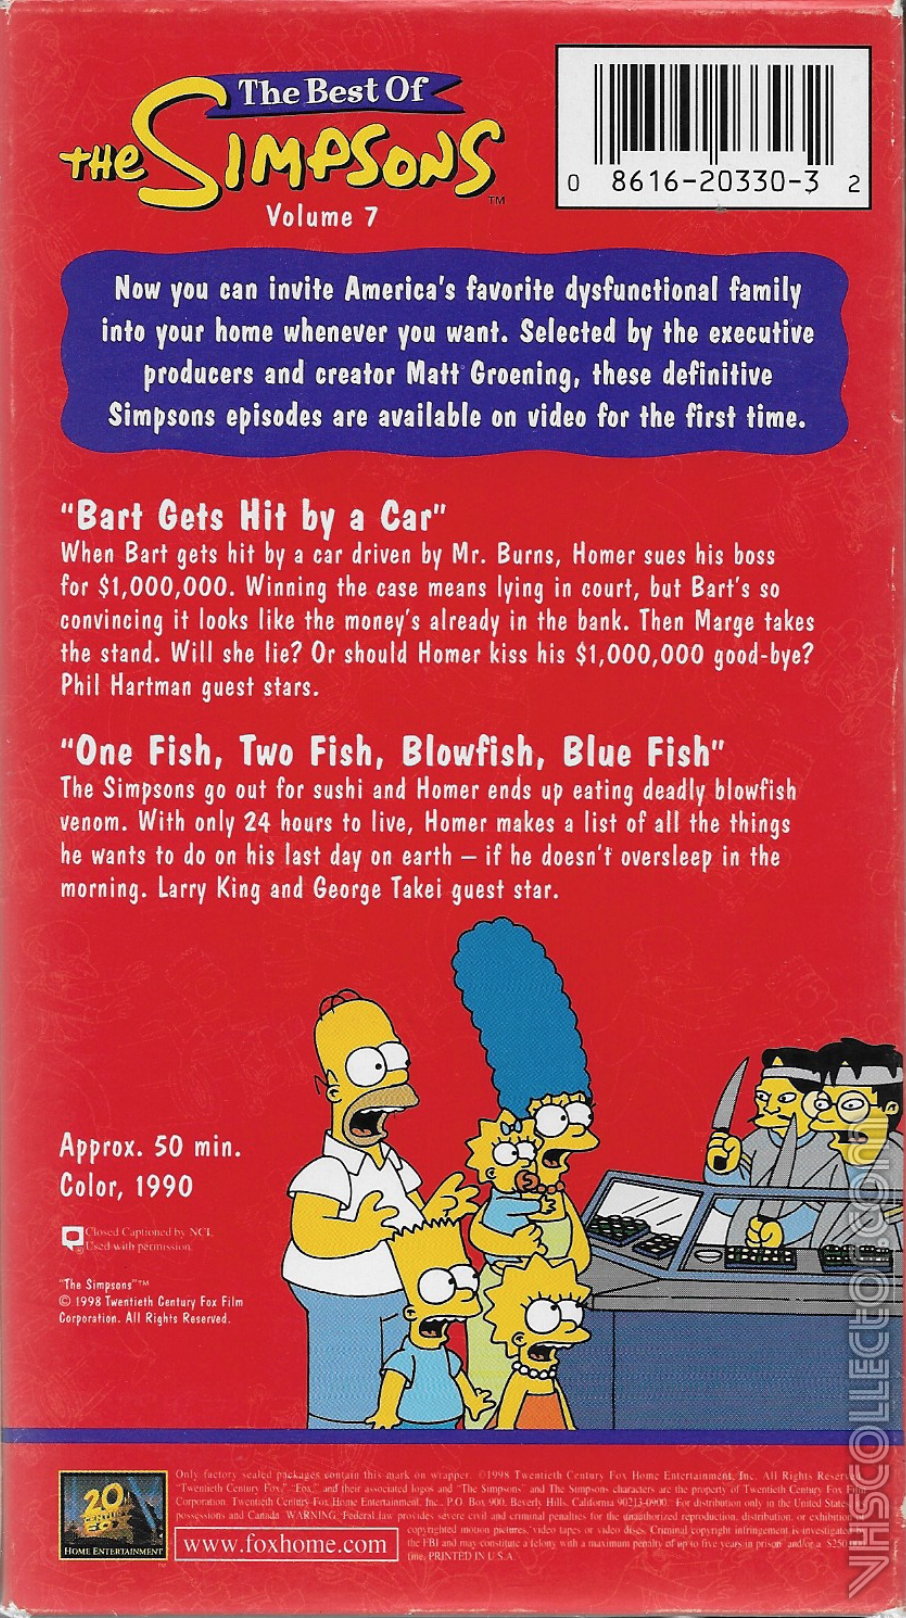 The Best Of The Simpsons Volume 7 Vhscollector Com